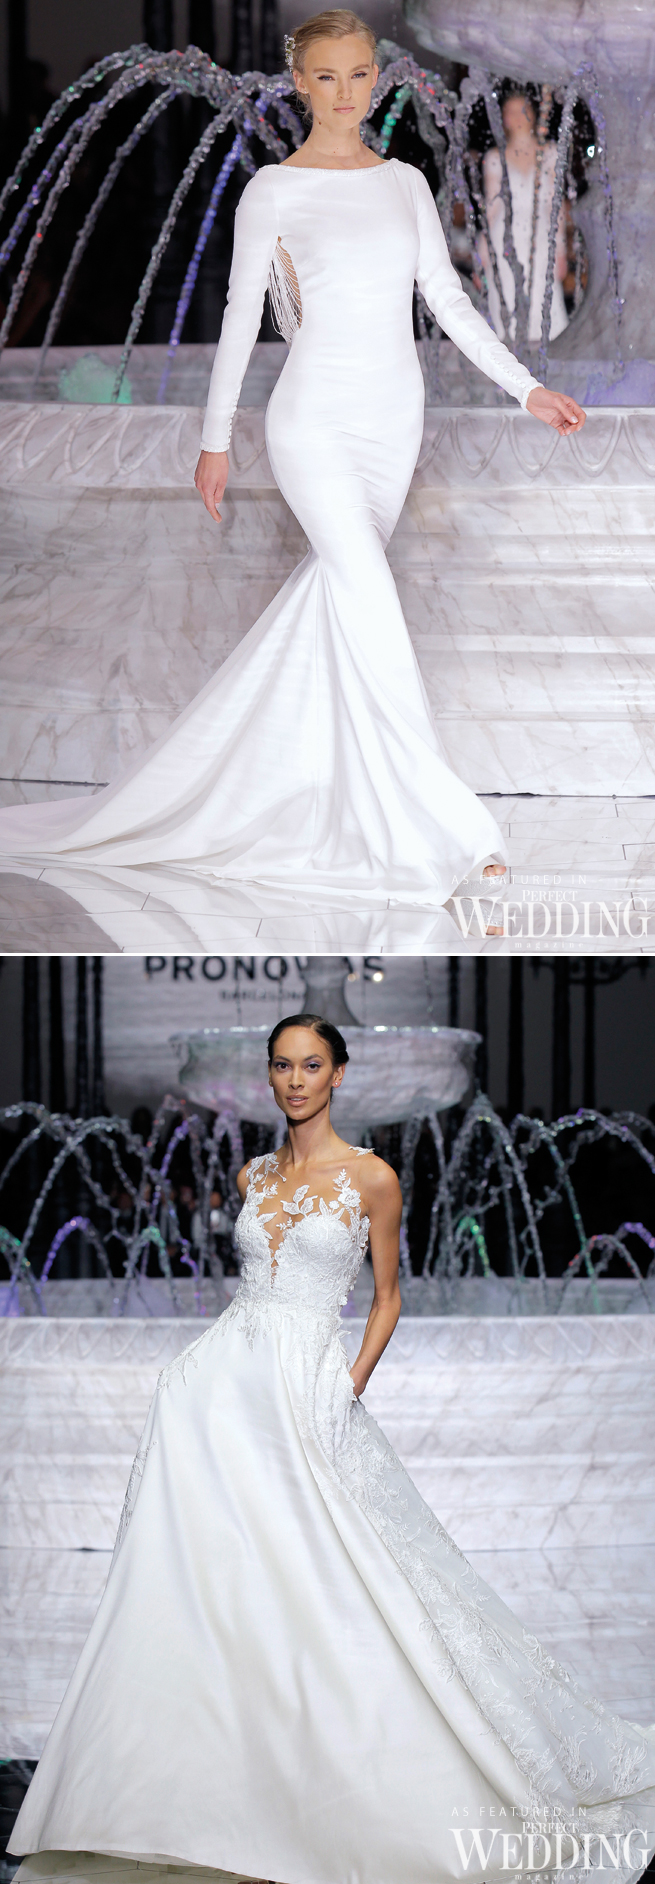 Perfect bride fashion show 84